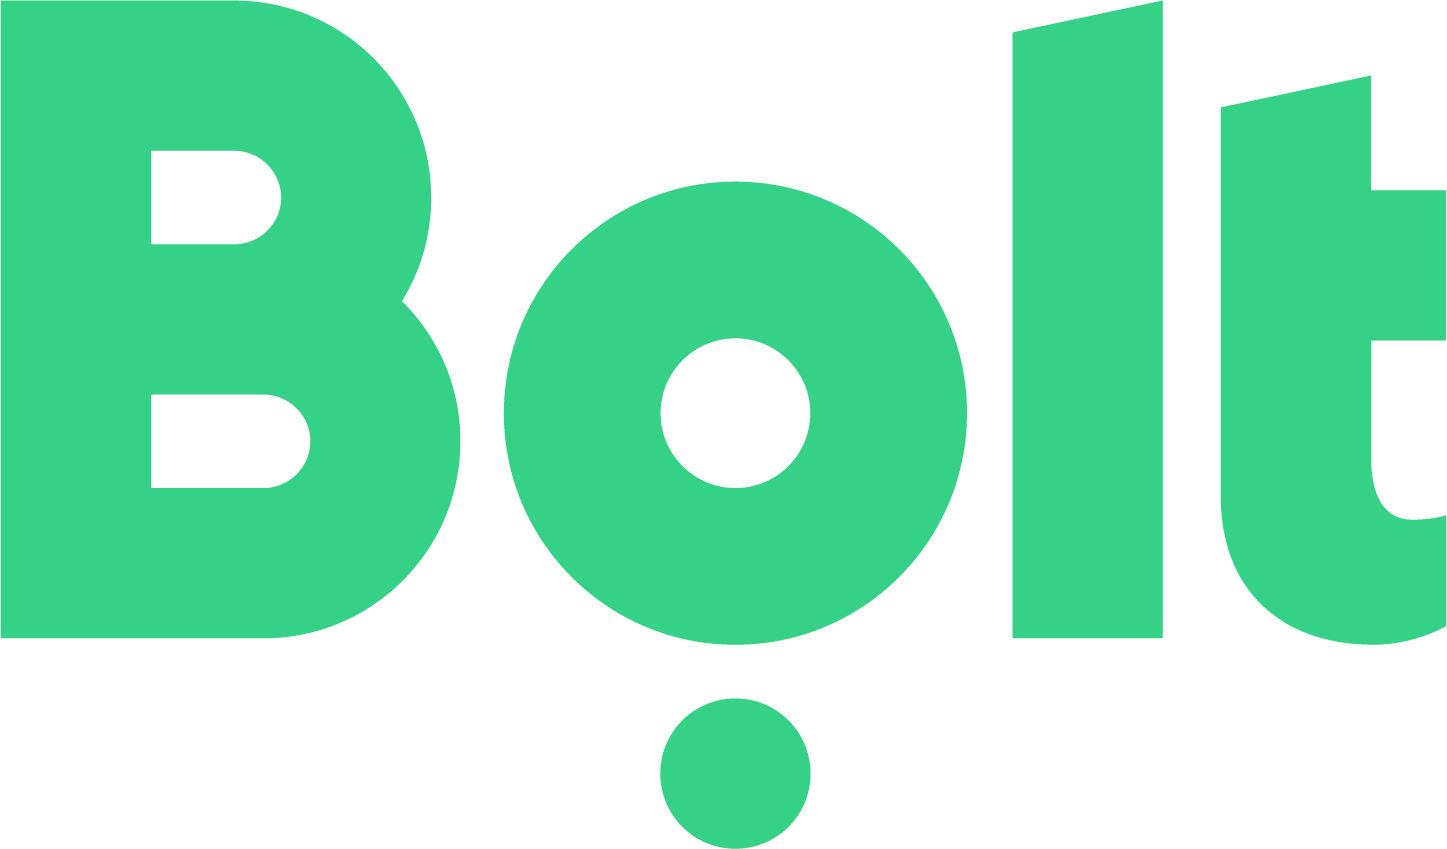 Bolt reopening office